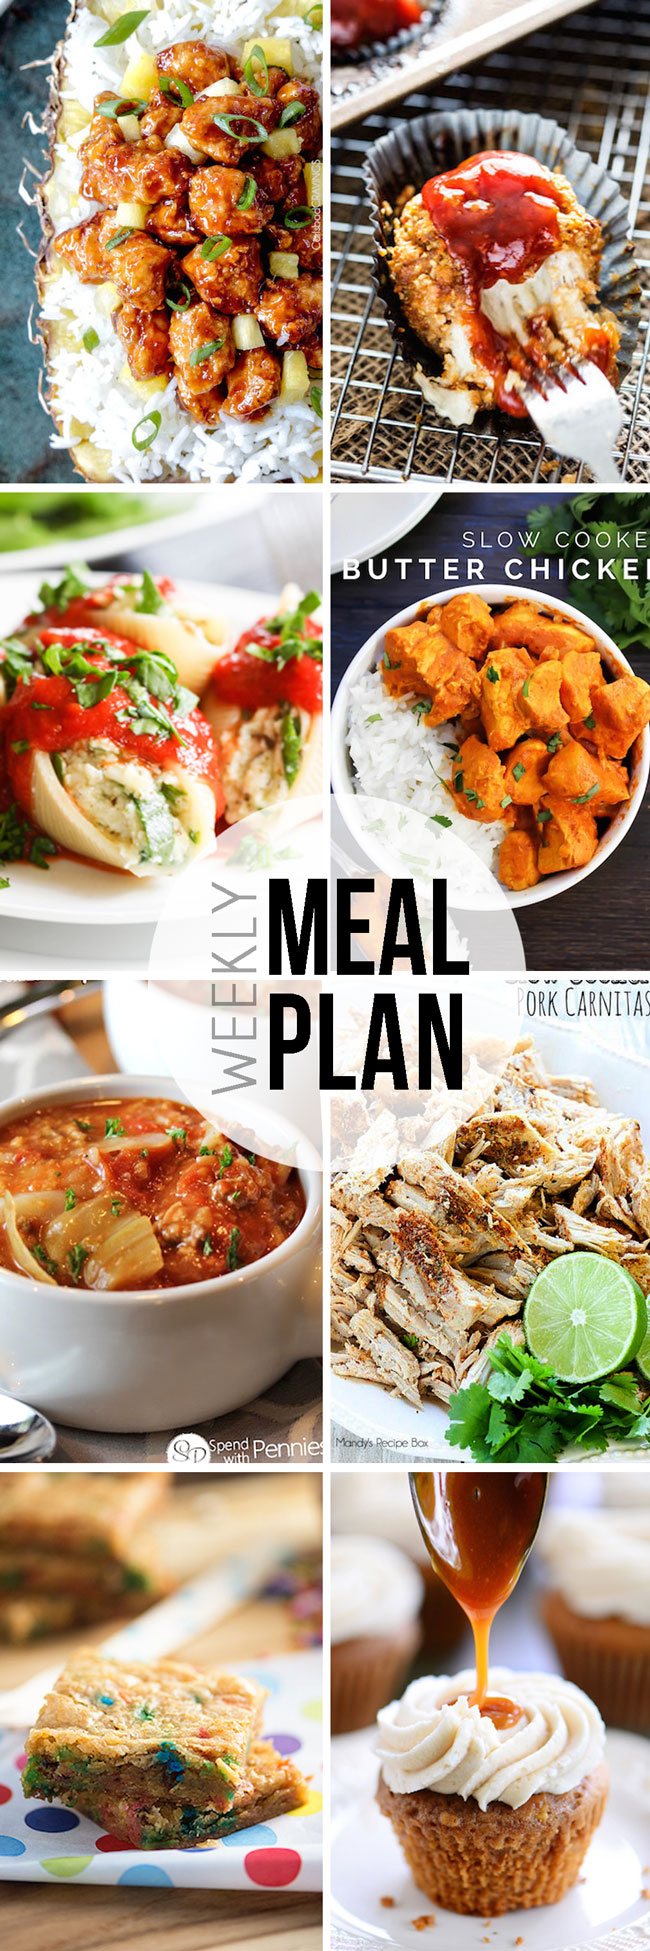 Make meal planning easy with this great plan for a week of meals. Easy Sunday Meal Plan, get your planning done, shop and prepare!